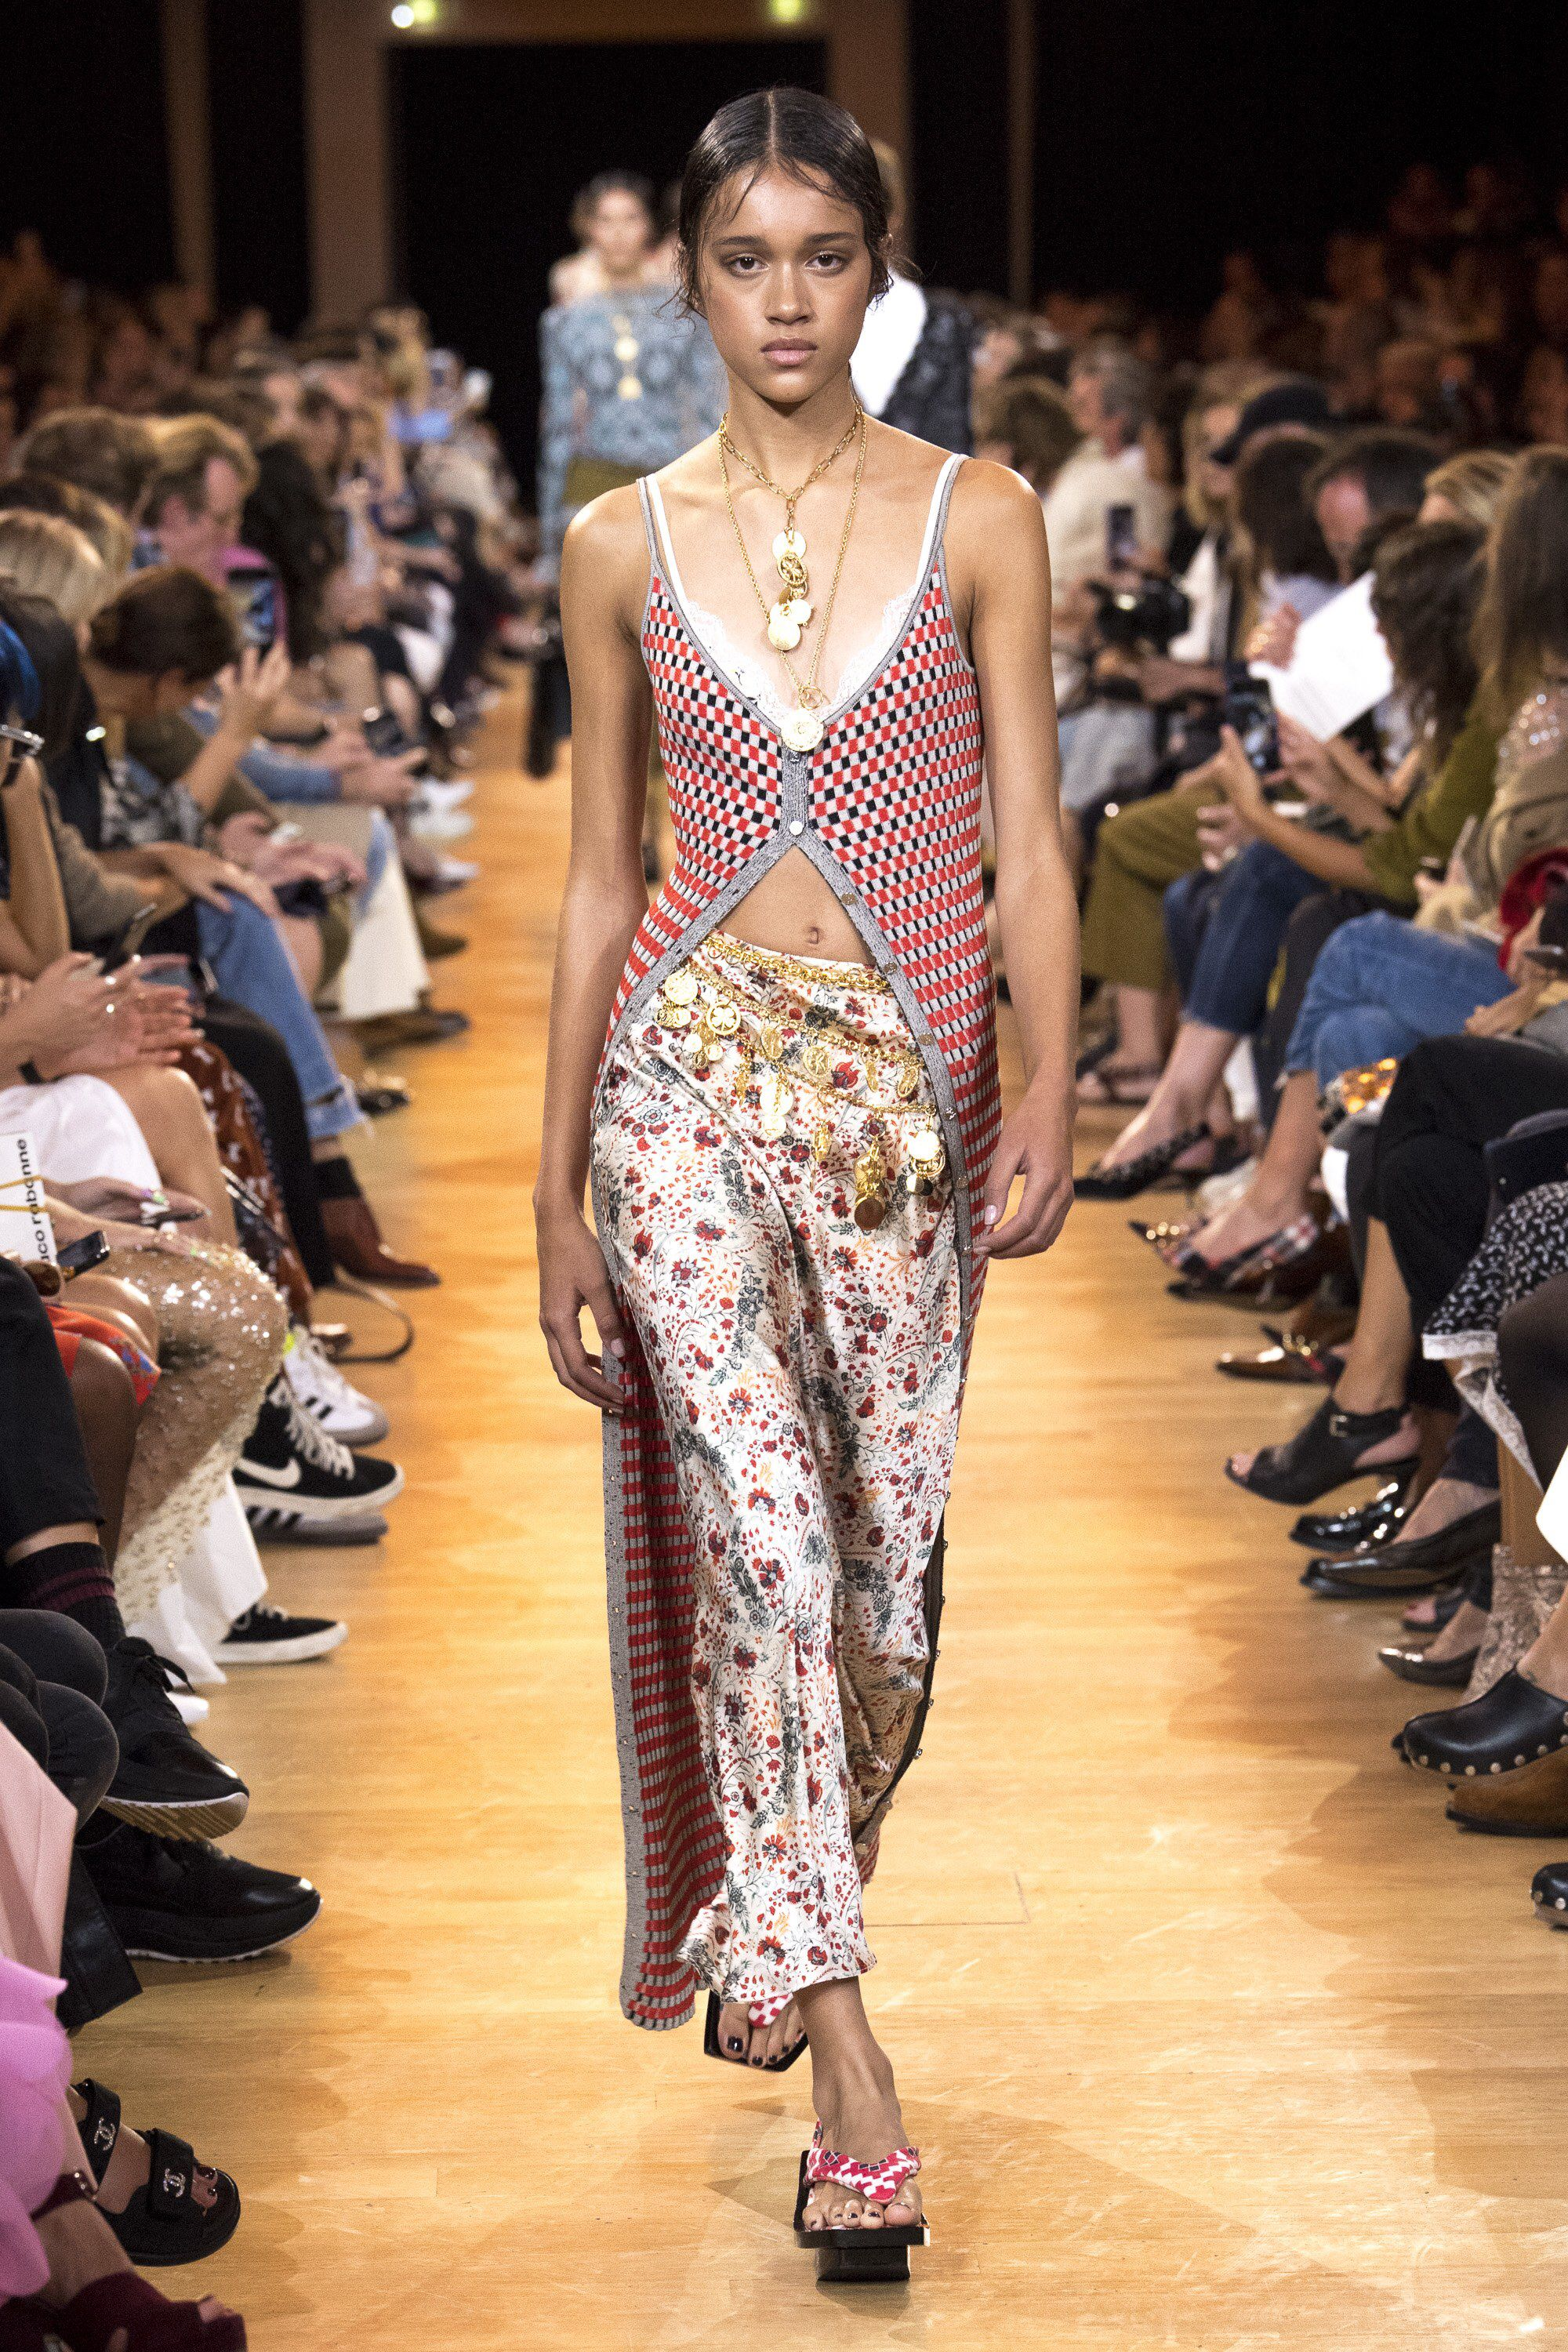 Paco Rabanne Spring 6 Ready-to-Wear Fashion Show Collection